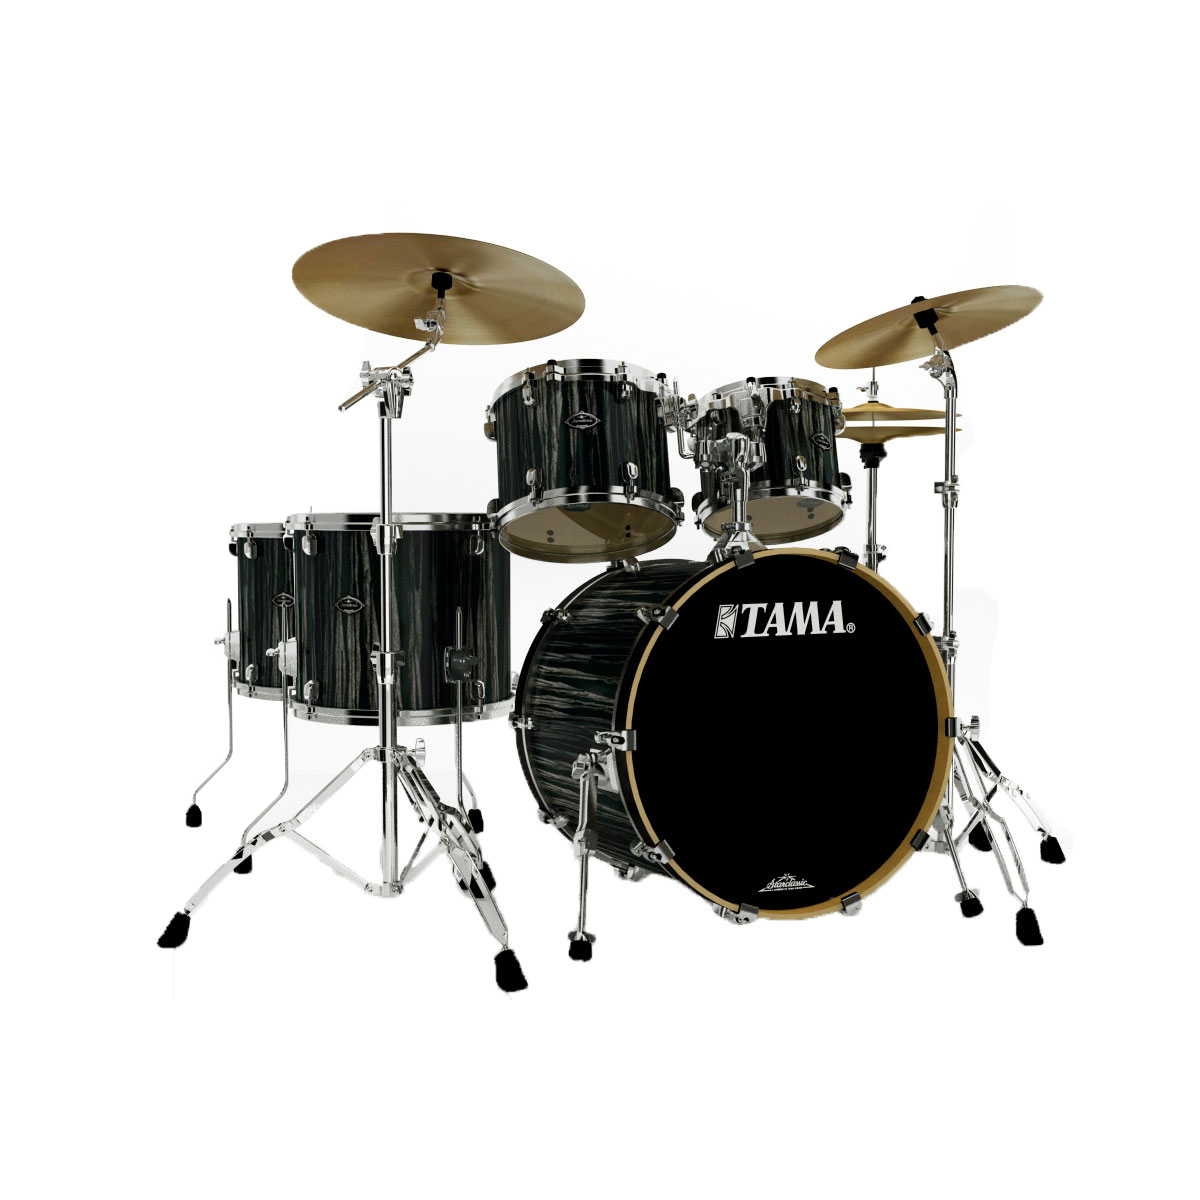 "Tama Starclassic Performer B/B 5-Piece Drum Set with Hardware (22"" Bass, 10/12/14/16"" Toms)"